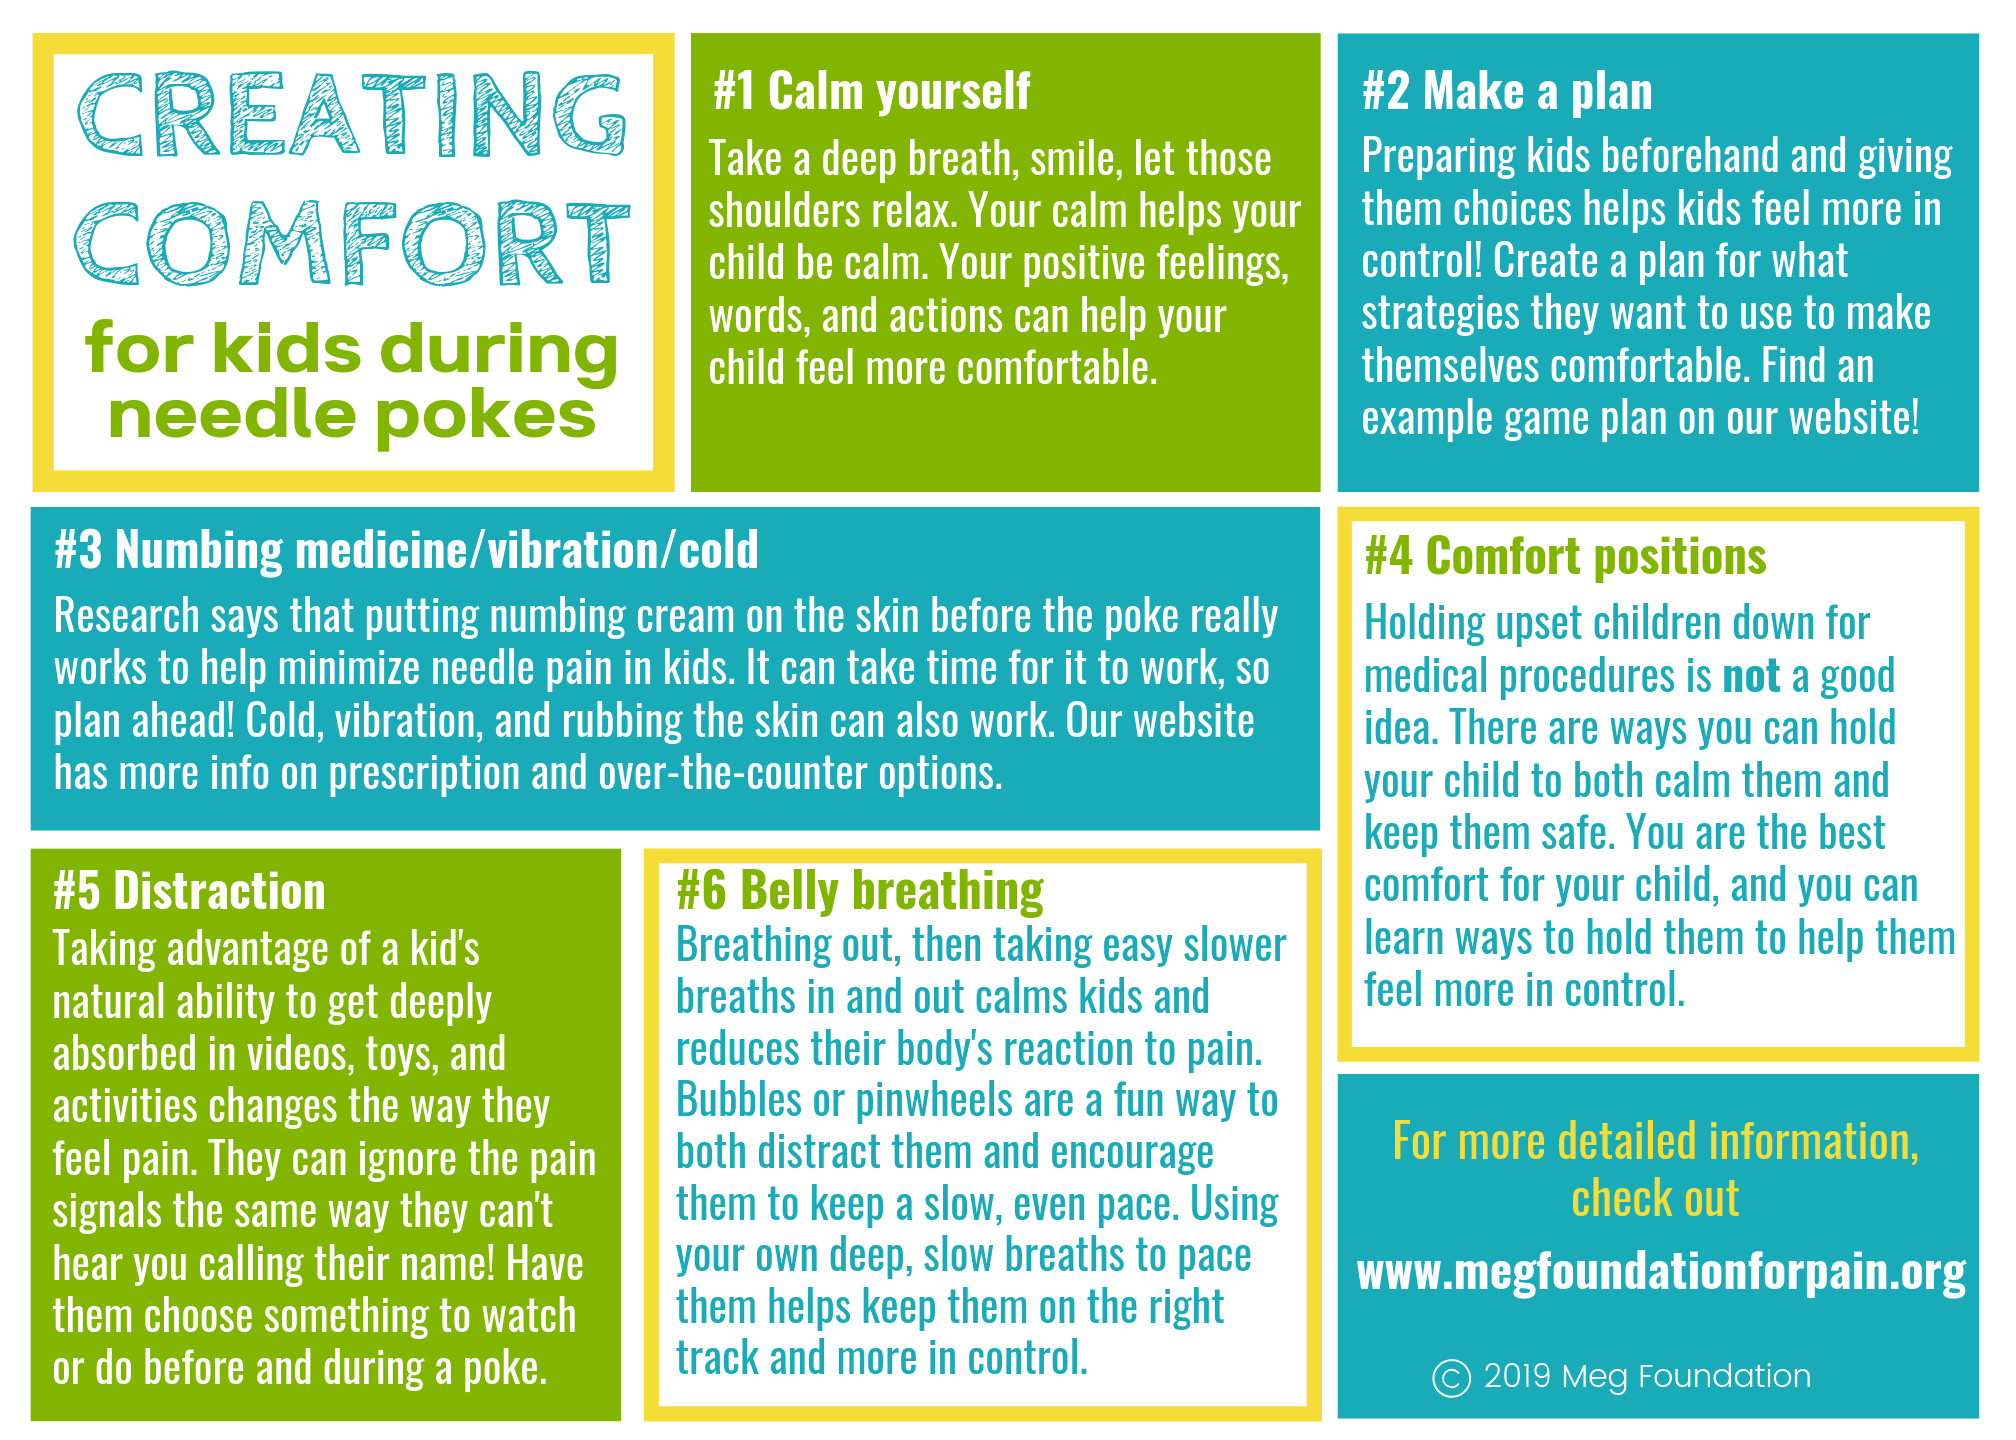 Click the image to download the guide for kids. -